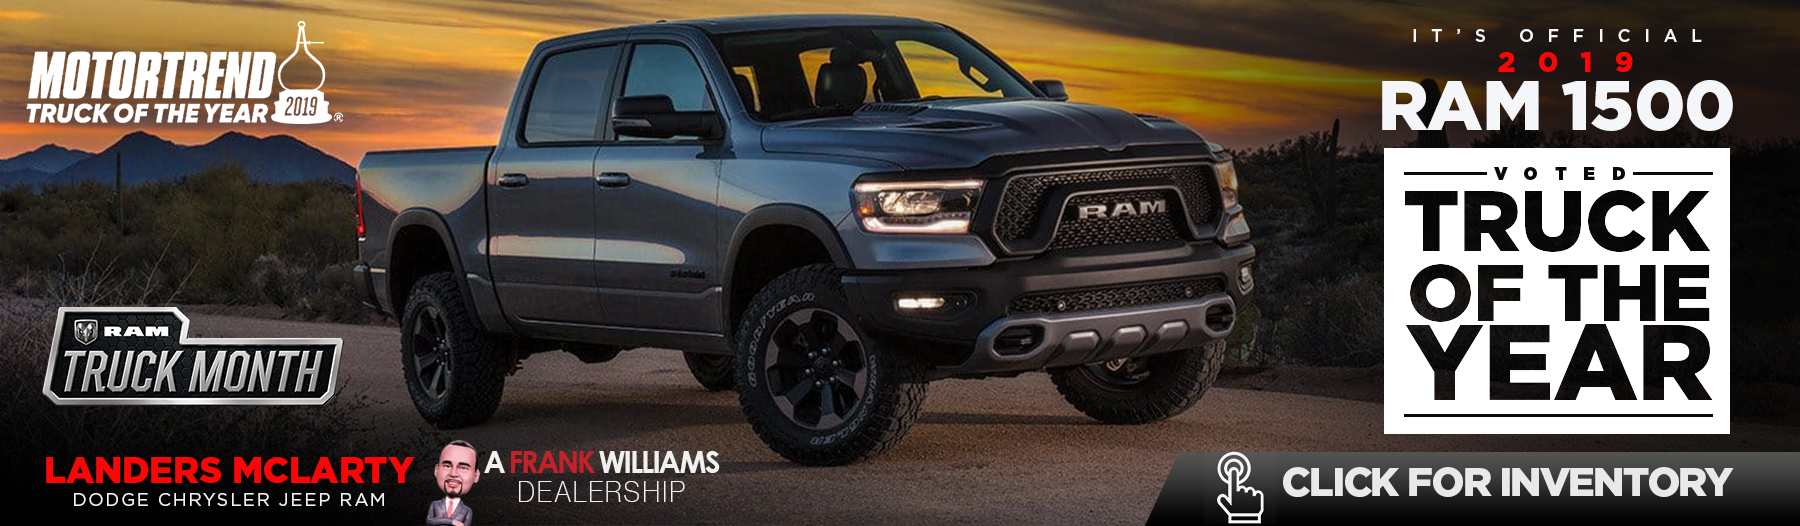 2019 Ram 1500 - Voted Truck Of The Year